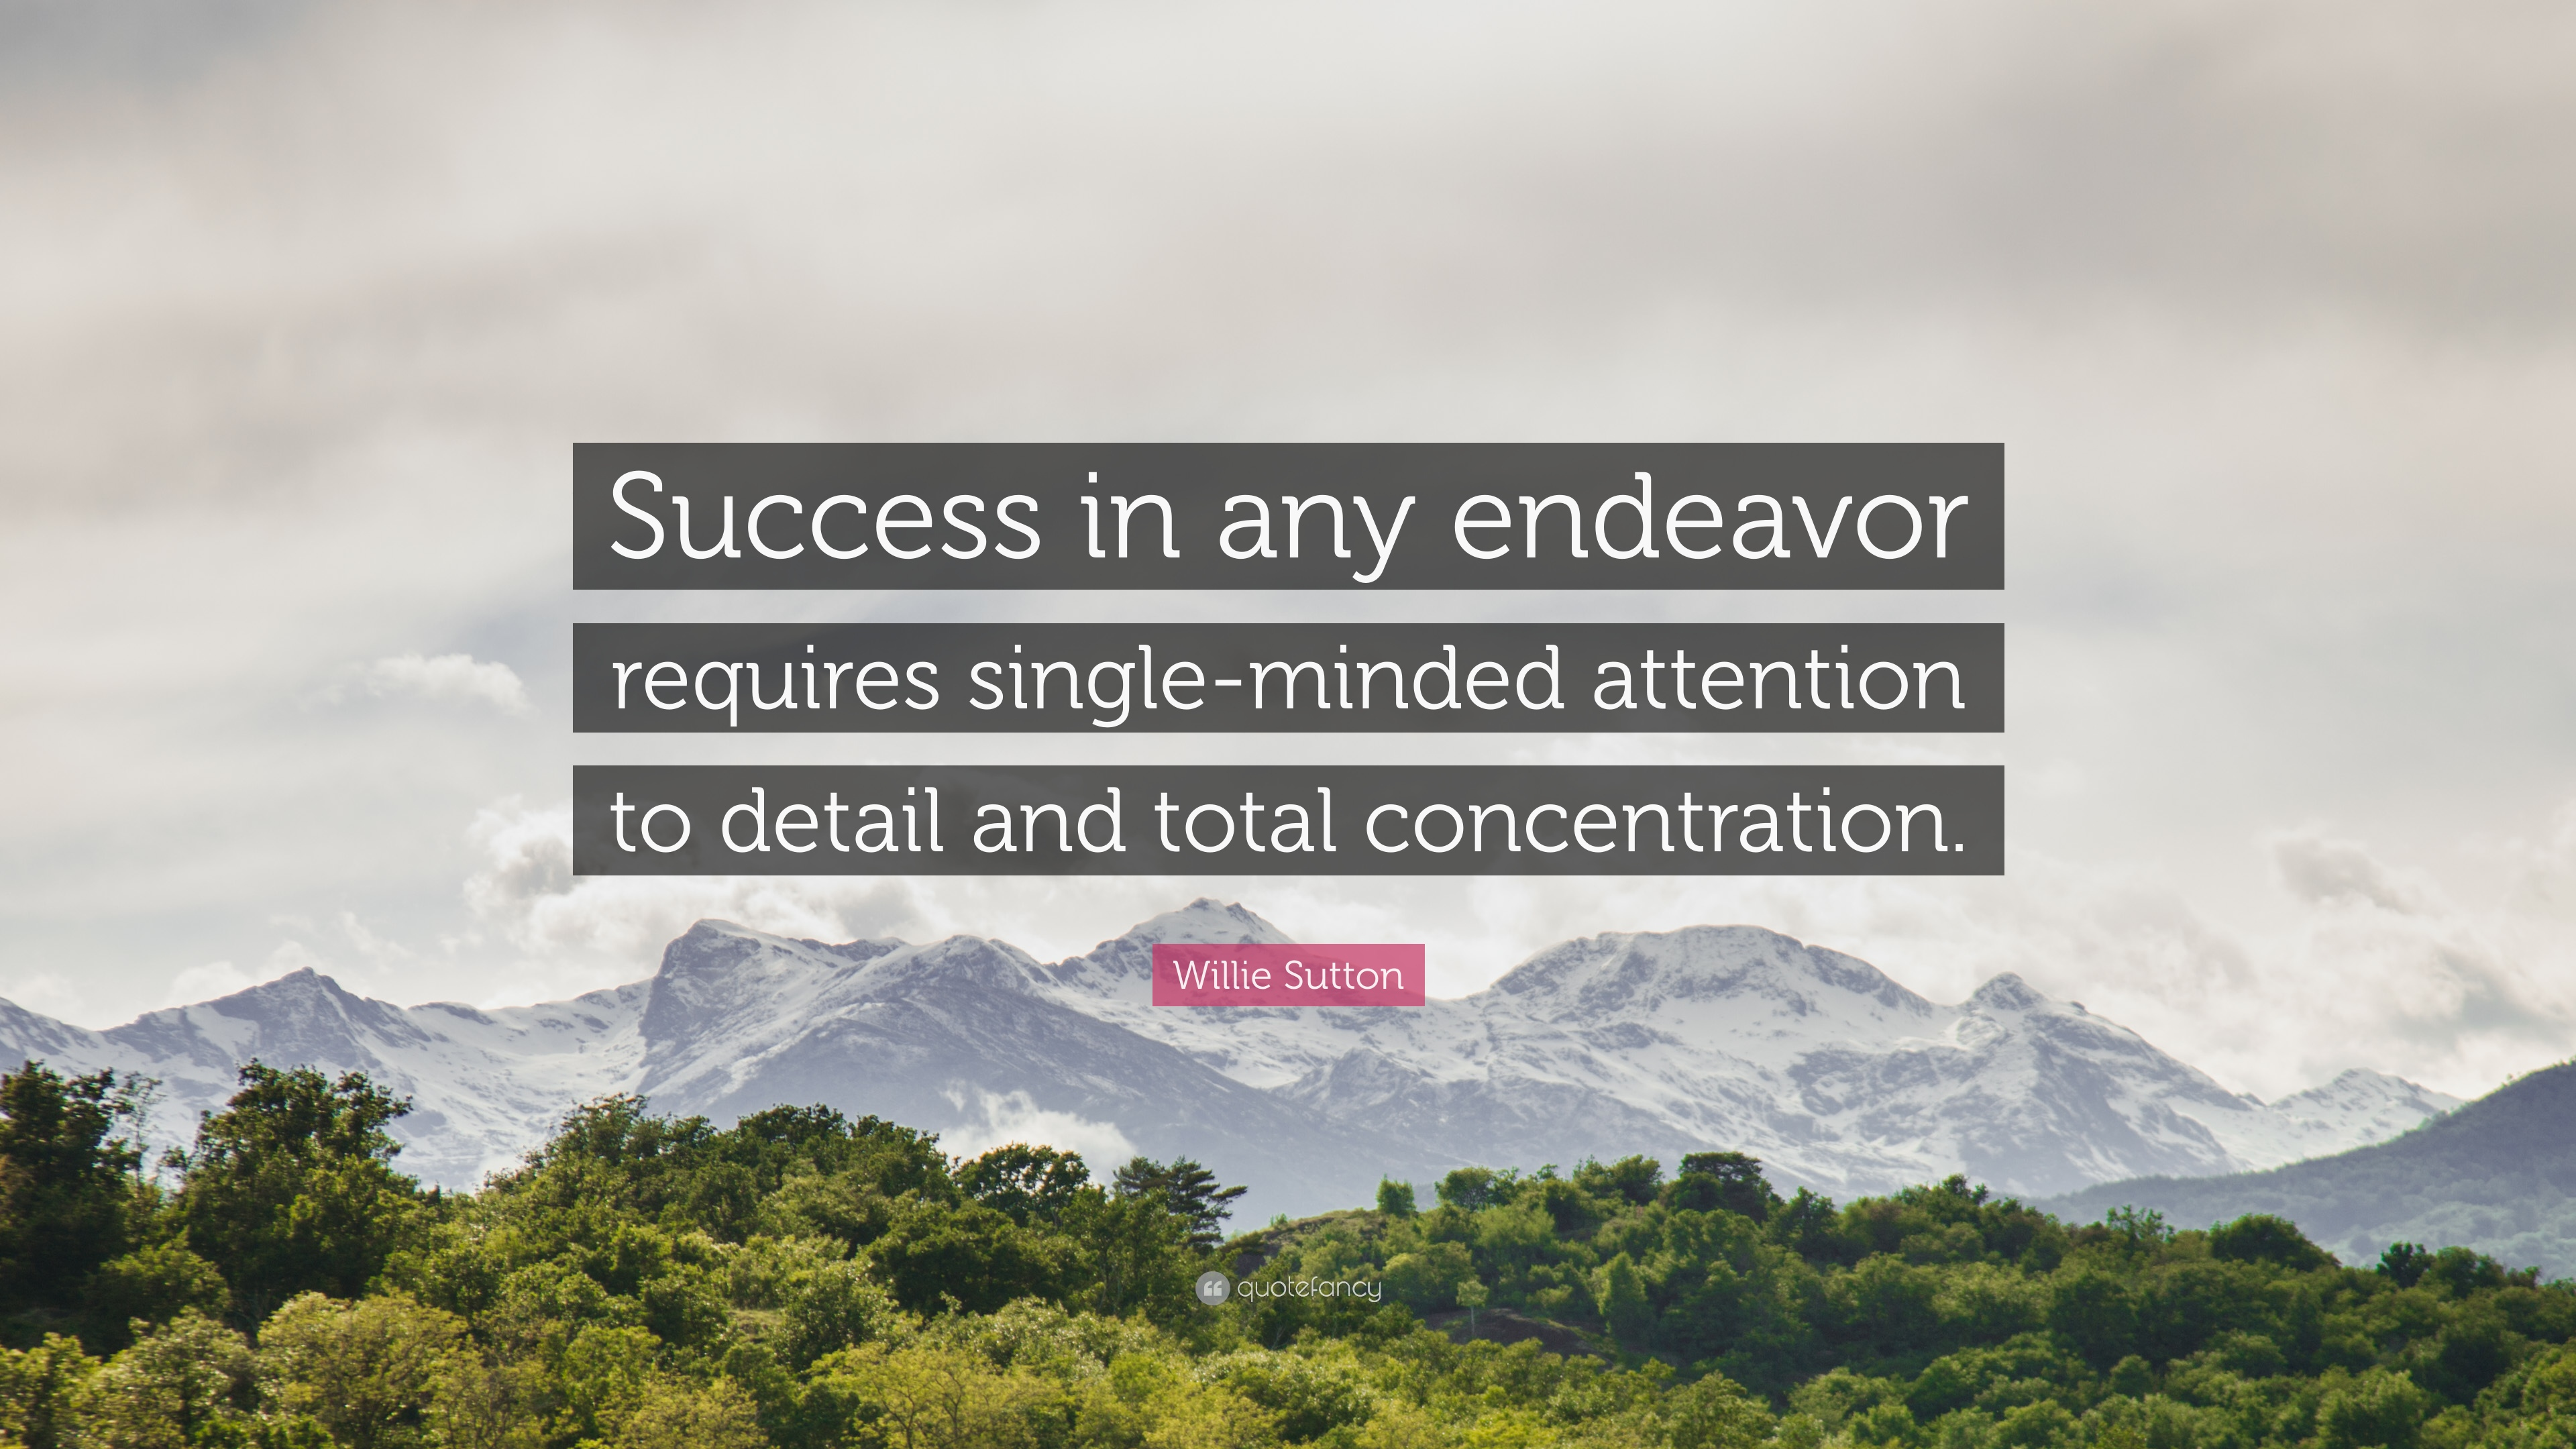 Willie Sutton Quote Success In Any Endeavor Requires Single Minded